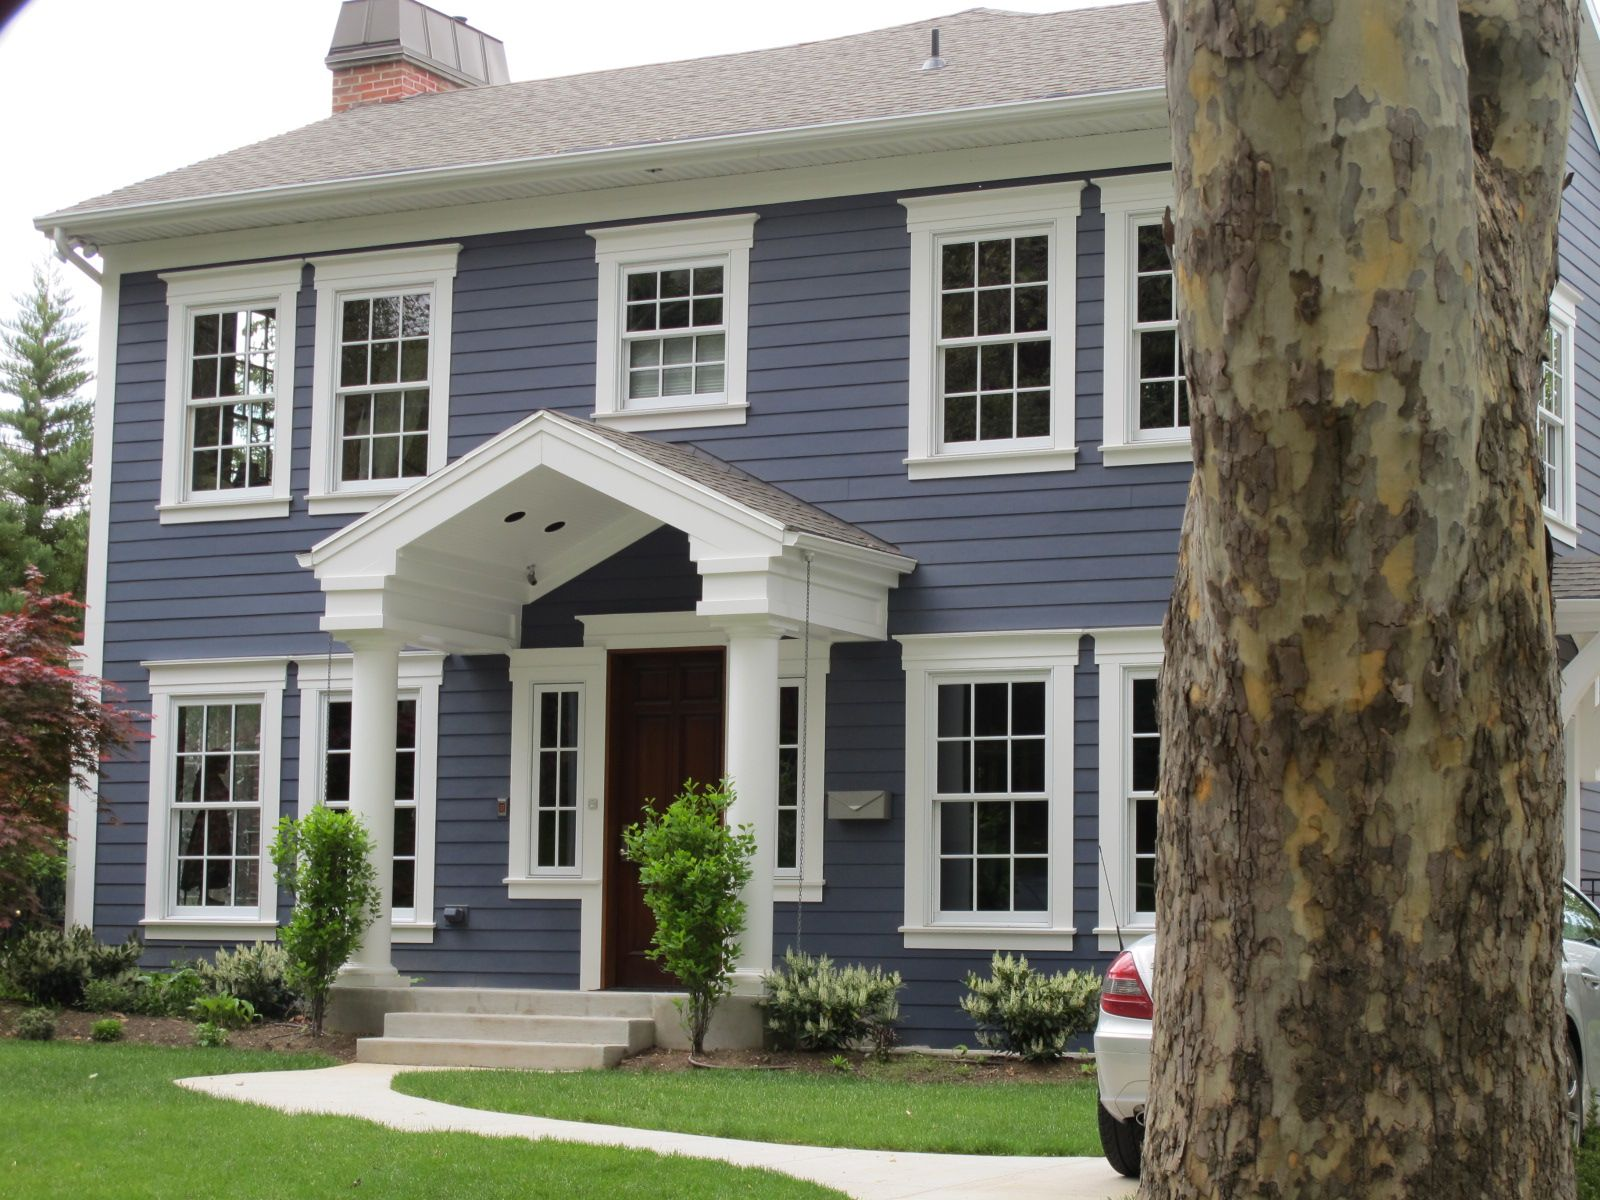 Exterior update blue siding white trim wood door yard exterior pinterest blue Outside paint for wood